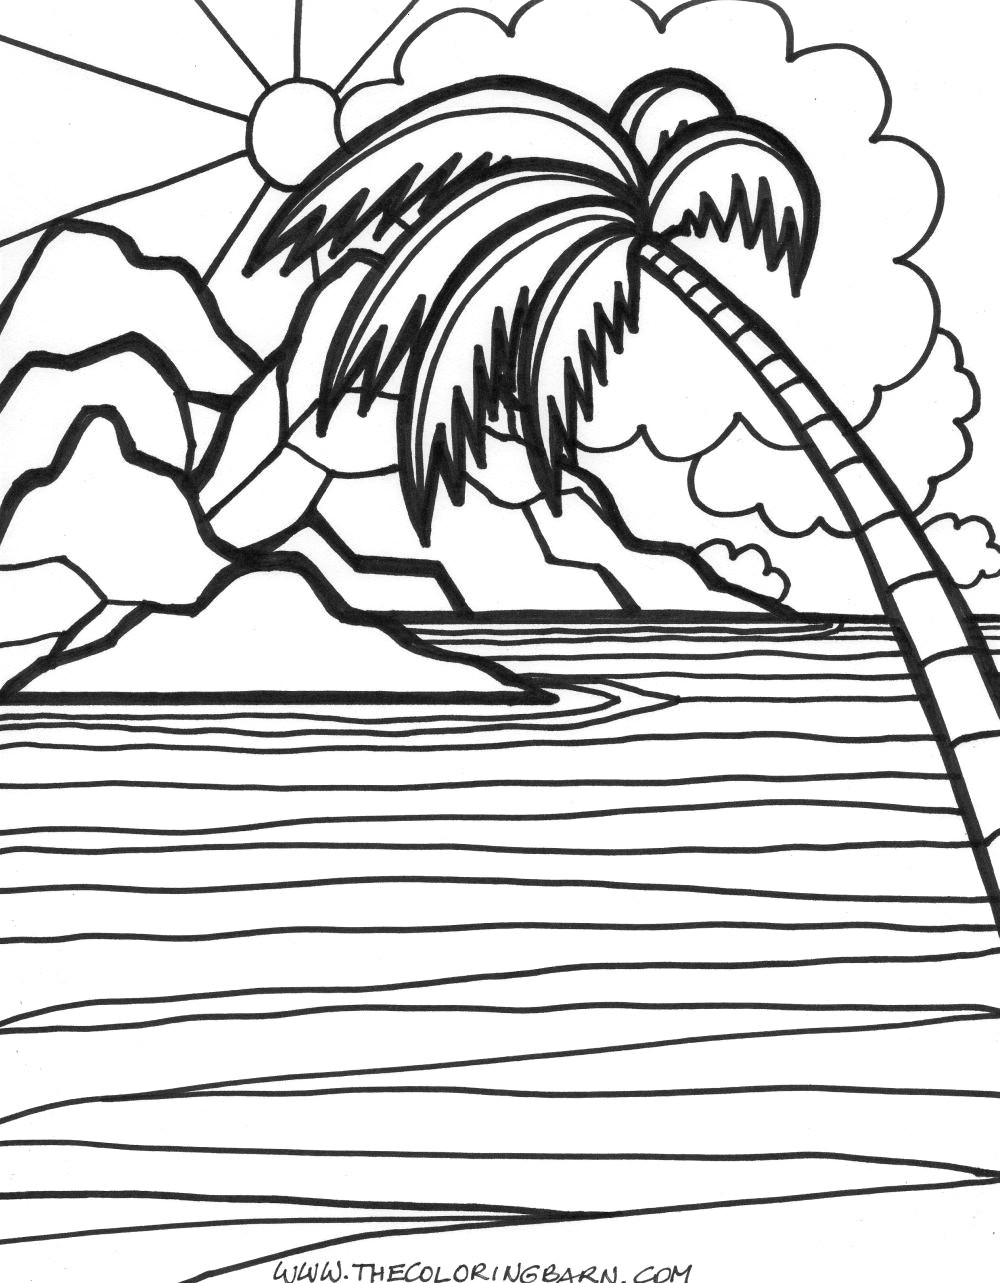 beach colouring page coloring pages free printable beach coloring pages for kids page beach coloring colouring pages